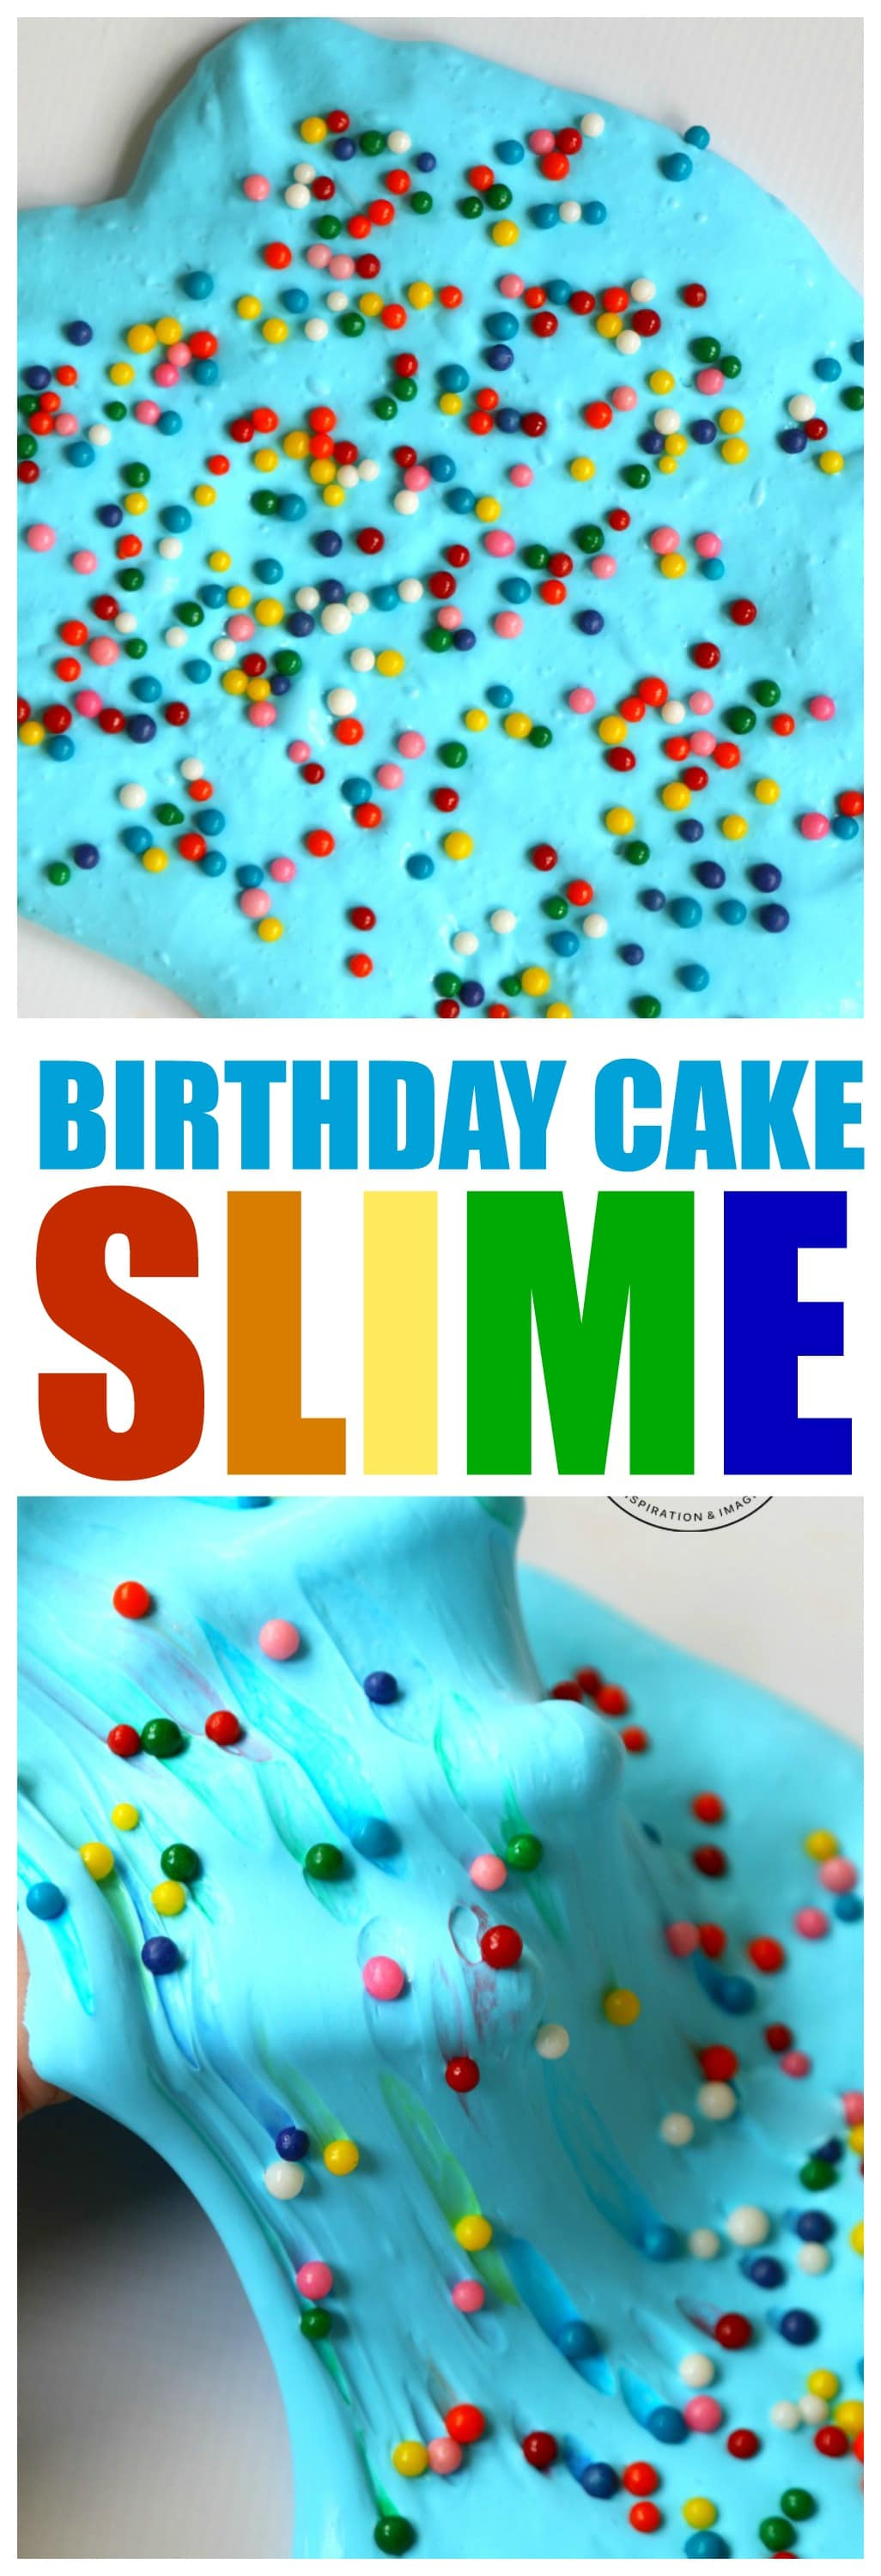 Birthday Cake Slime: Use Sprinkles to create rainbows in your slime